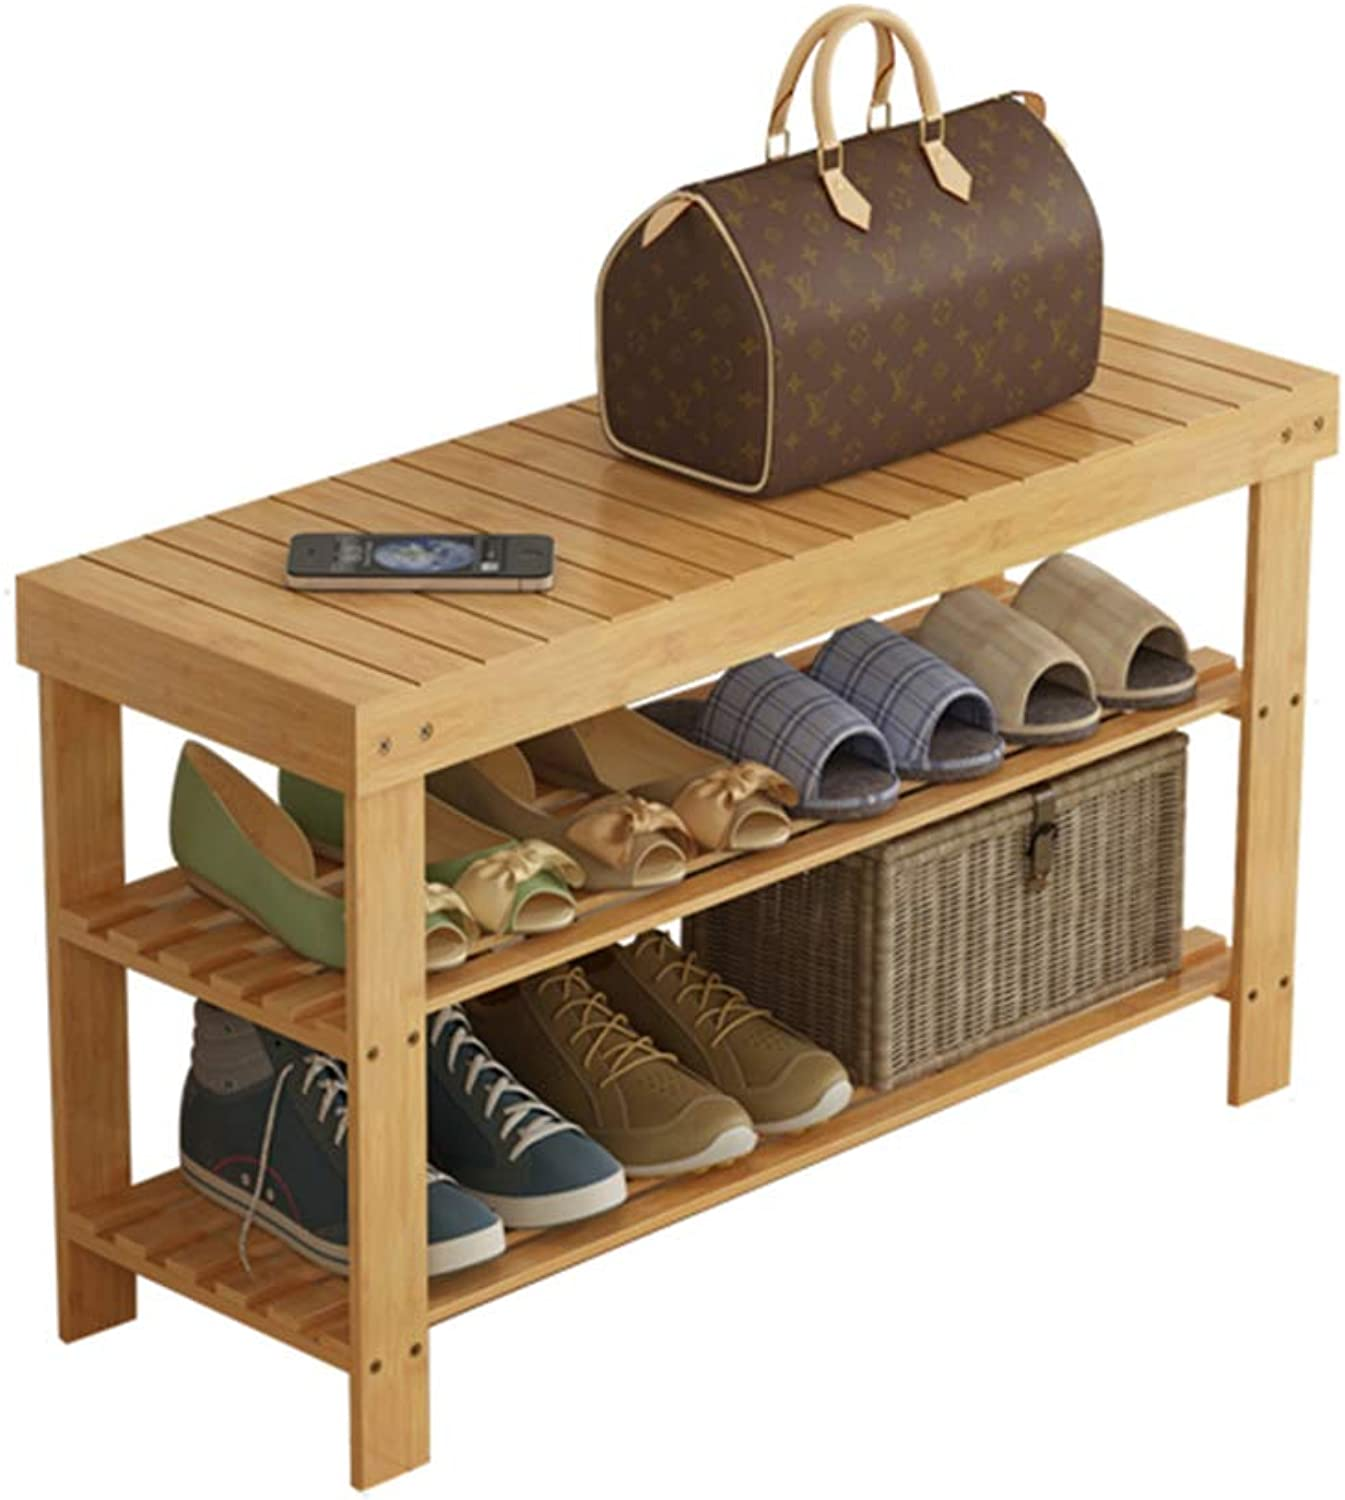 426cd75e7c85 Ideal Cabinet shoes Wood Solid Organizer Storage Rack shoes Bench ...